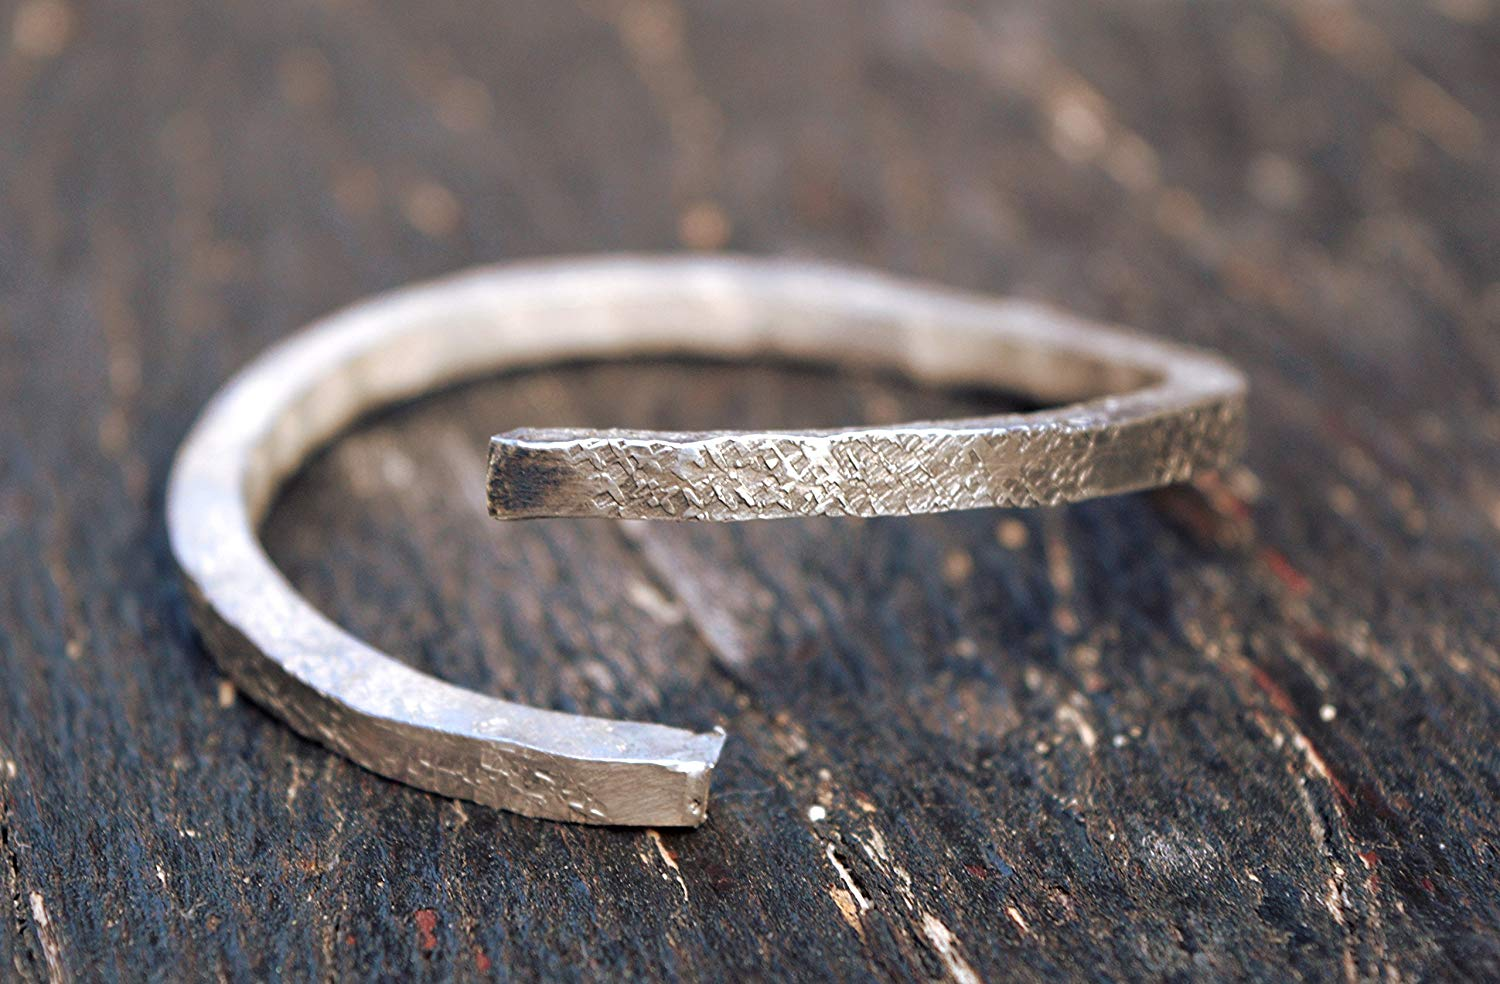 sterling silver stacking bangle THICK, rustic sterling silver bracelet, handmade rustic bangle, thick, unique bangle,metalsmith, handforged,rustic sterling silver